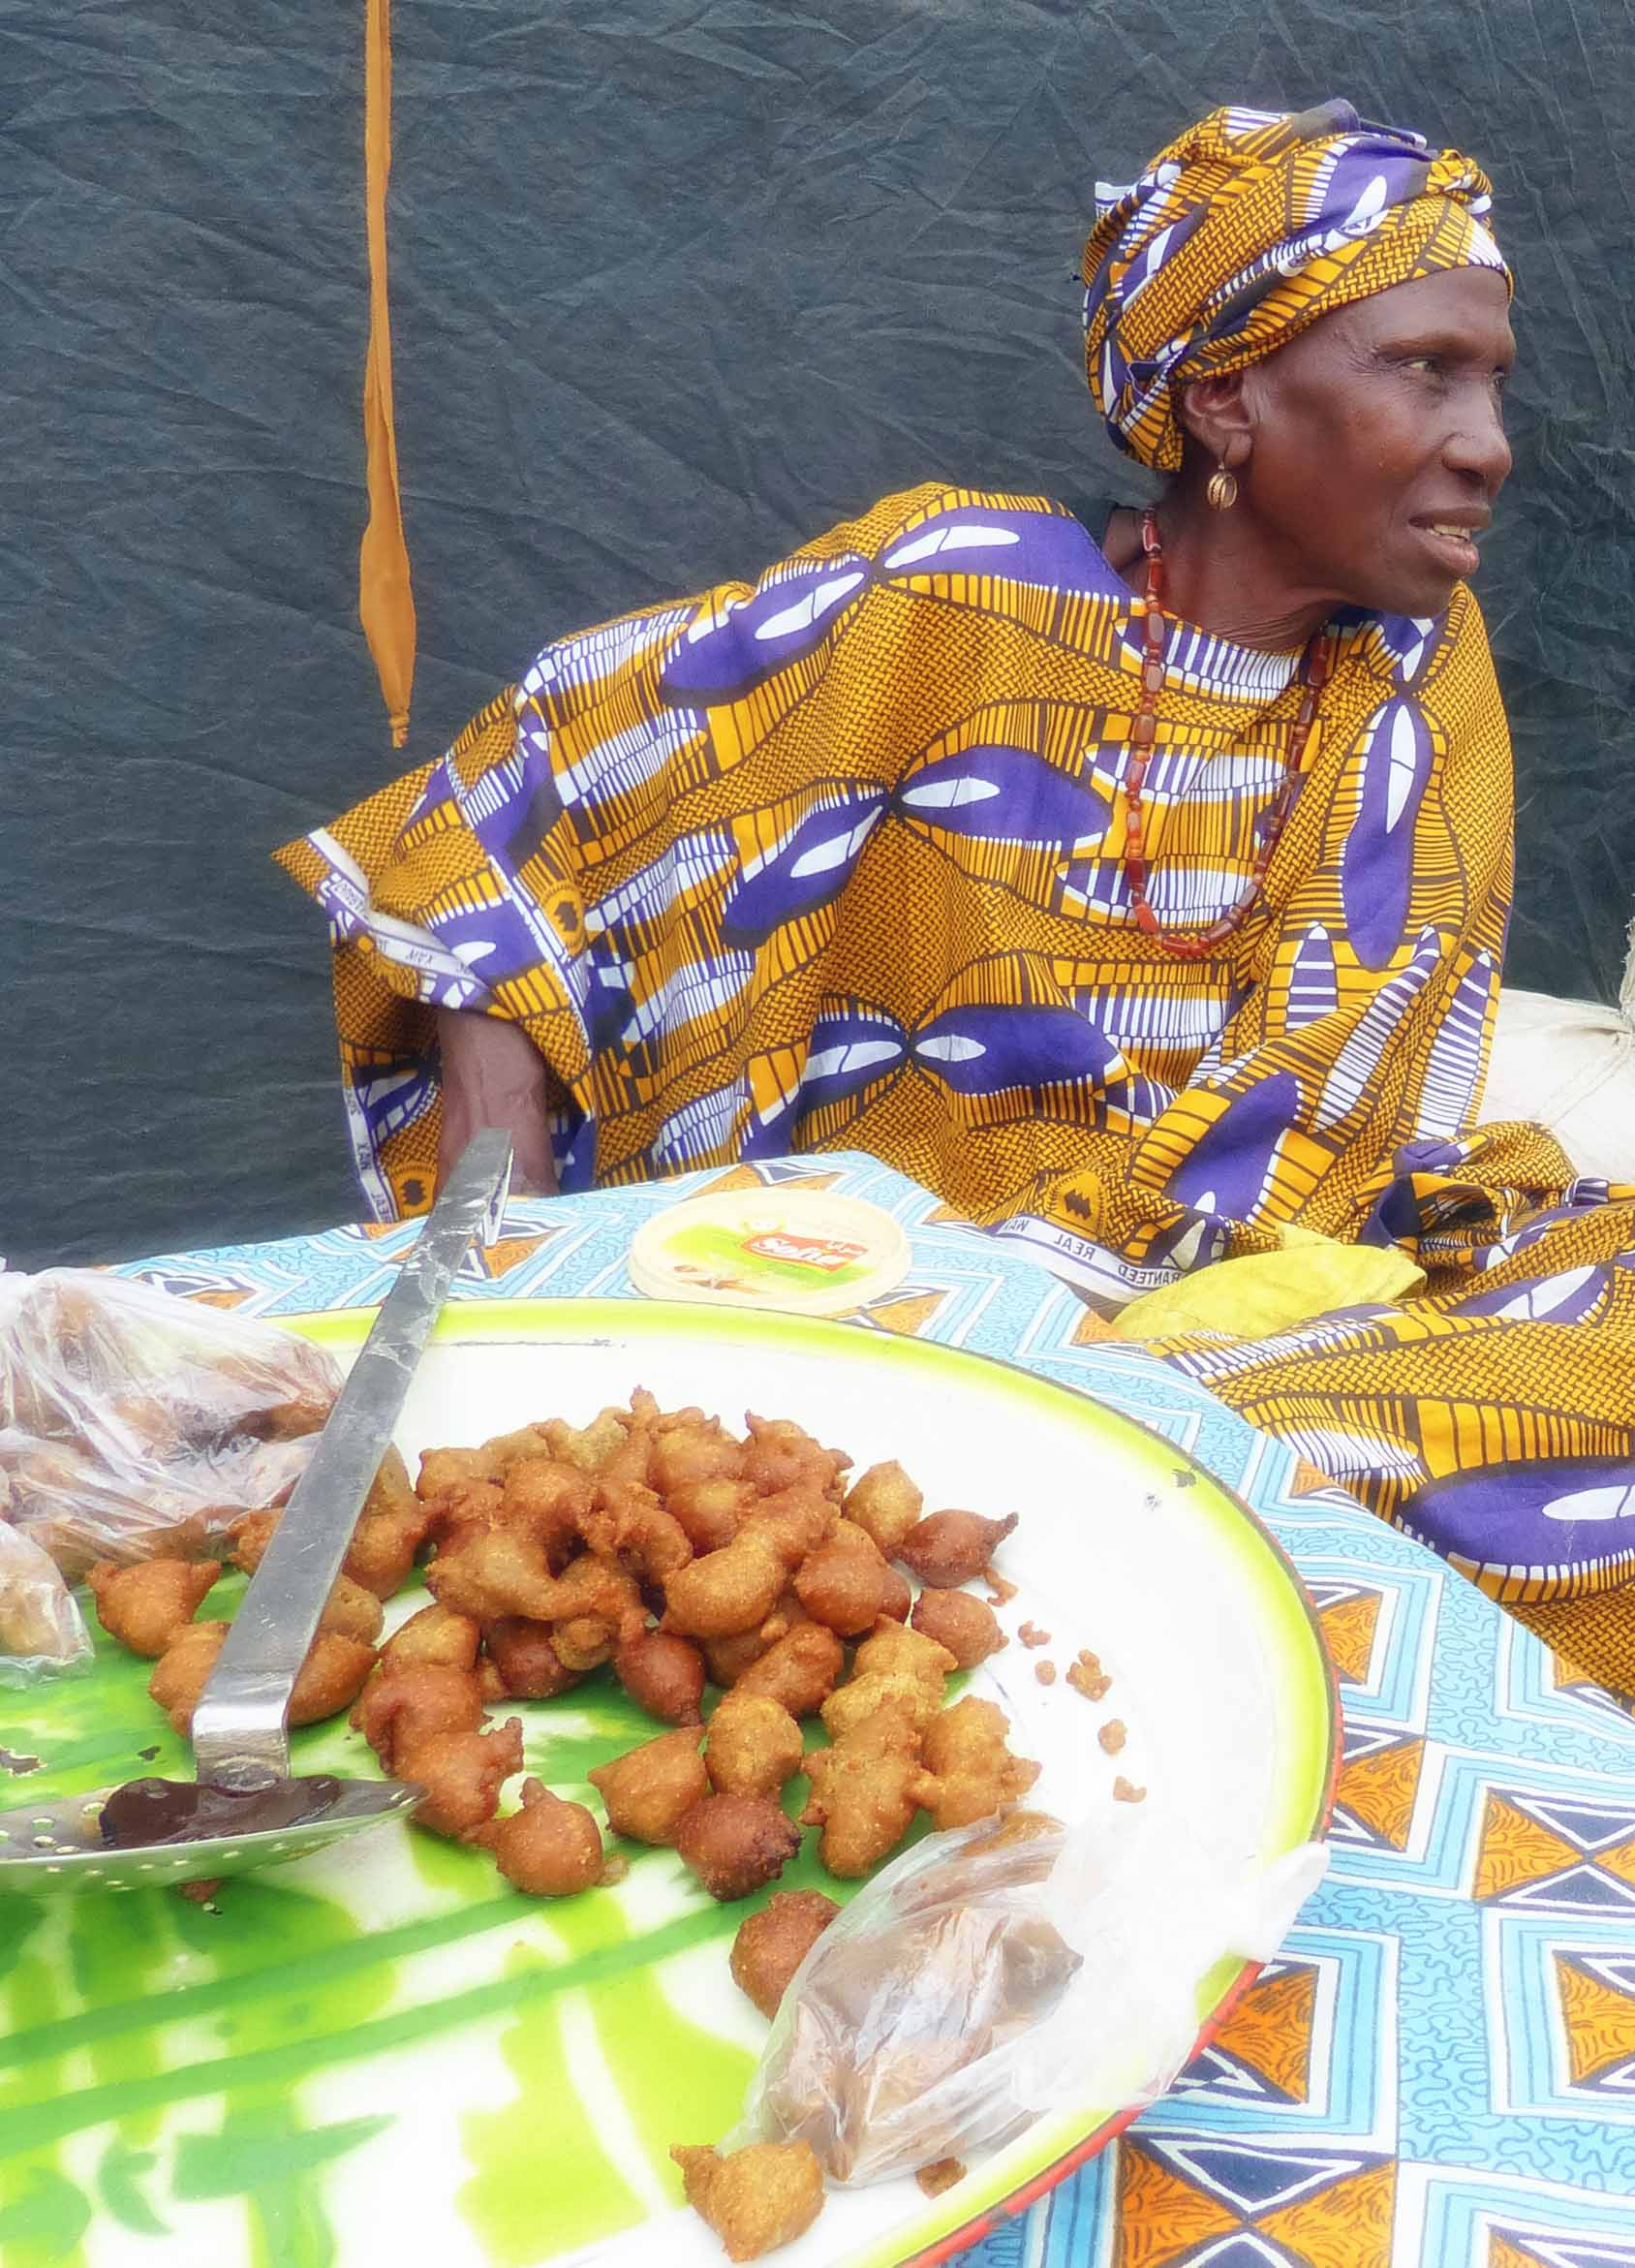 Lady in African dress selling fried food